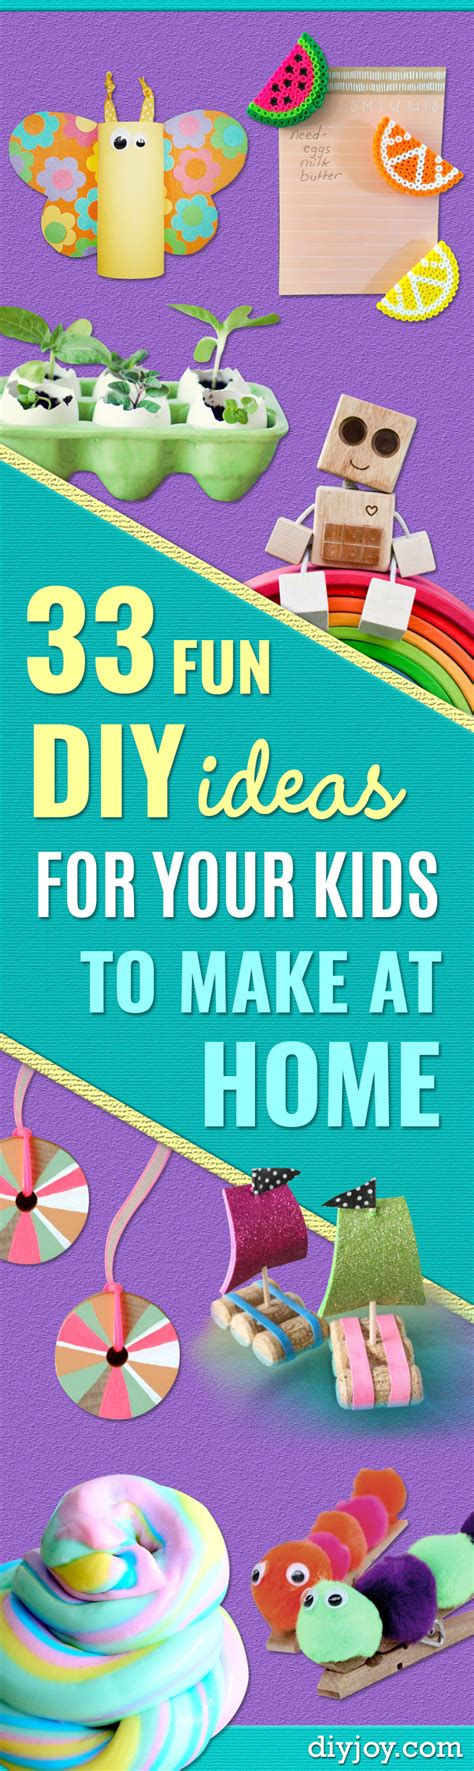 make home 33 fun diy ideas for your kids to make at home page 4 of